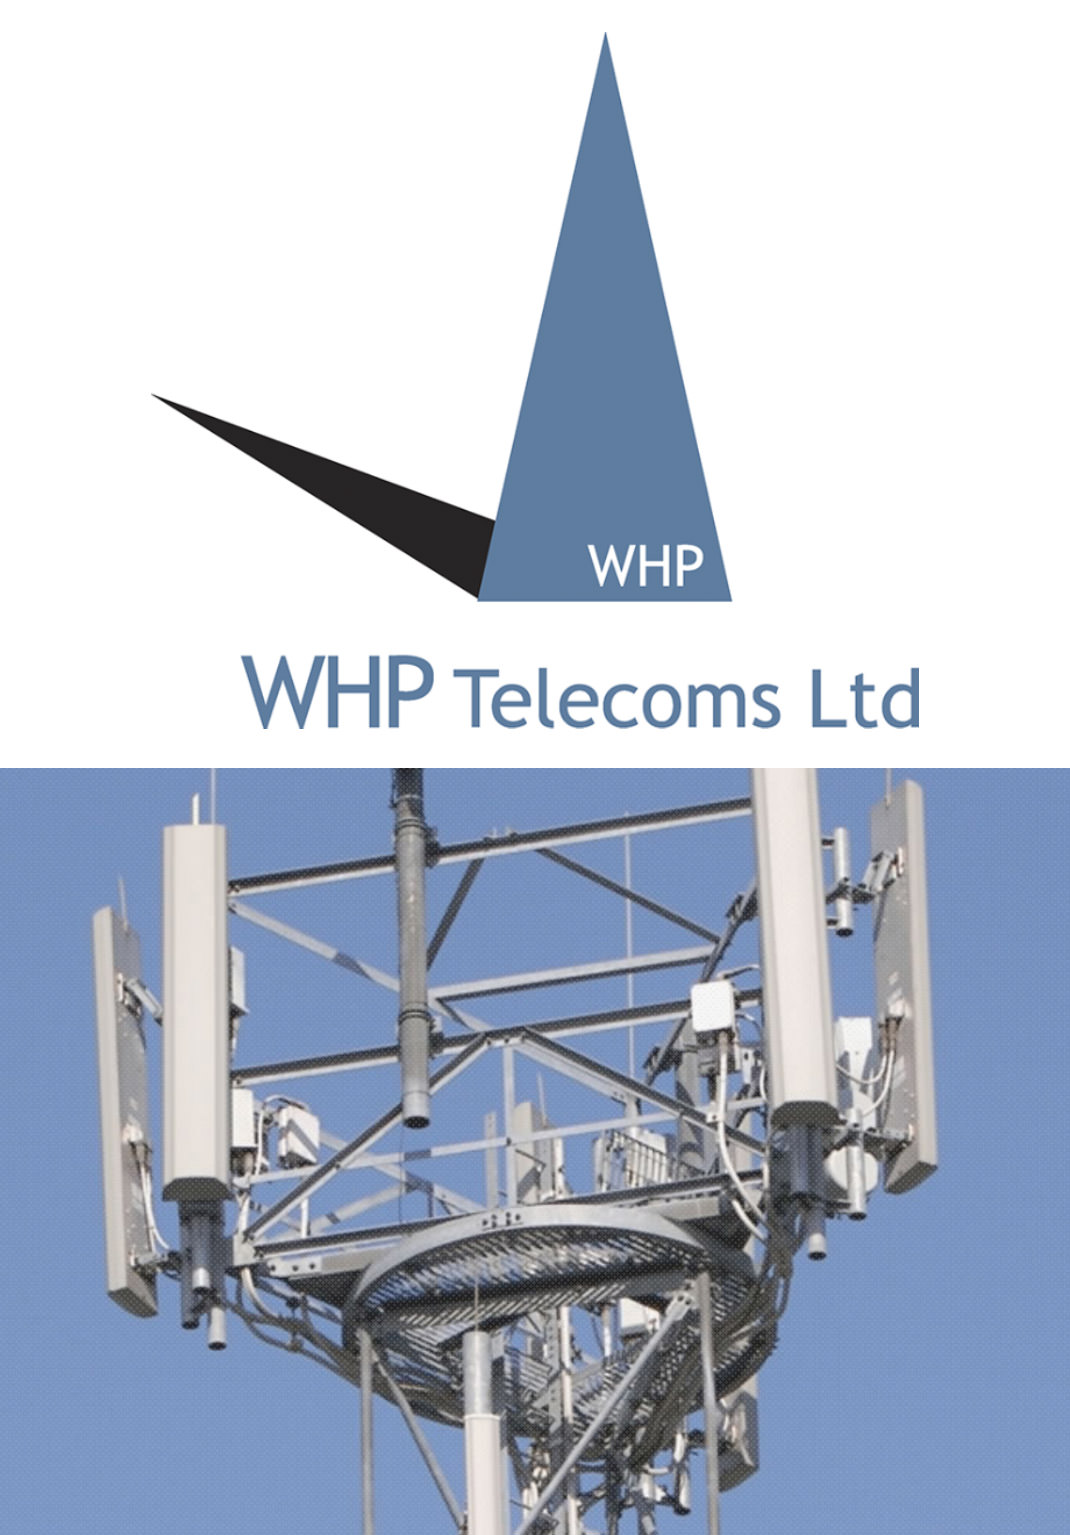 WHP Telecoms logo and image